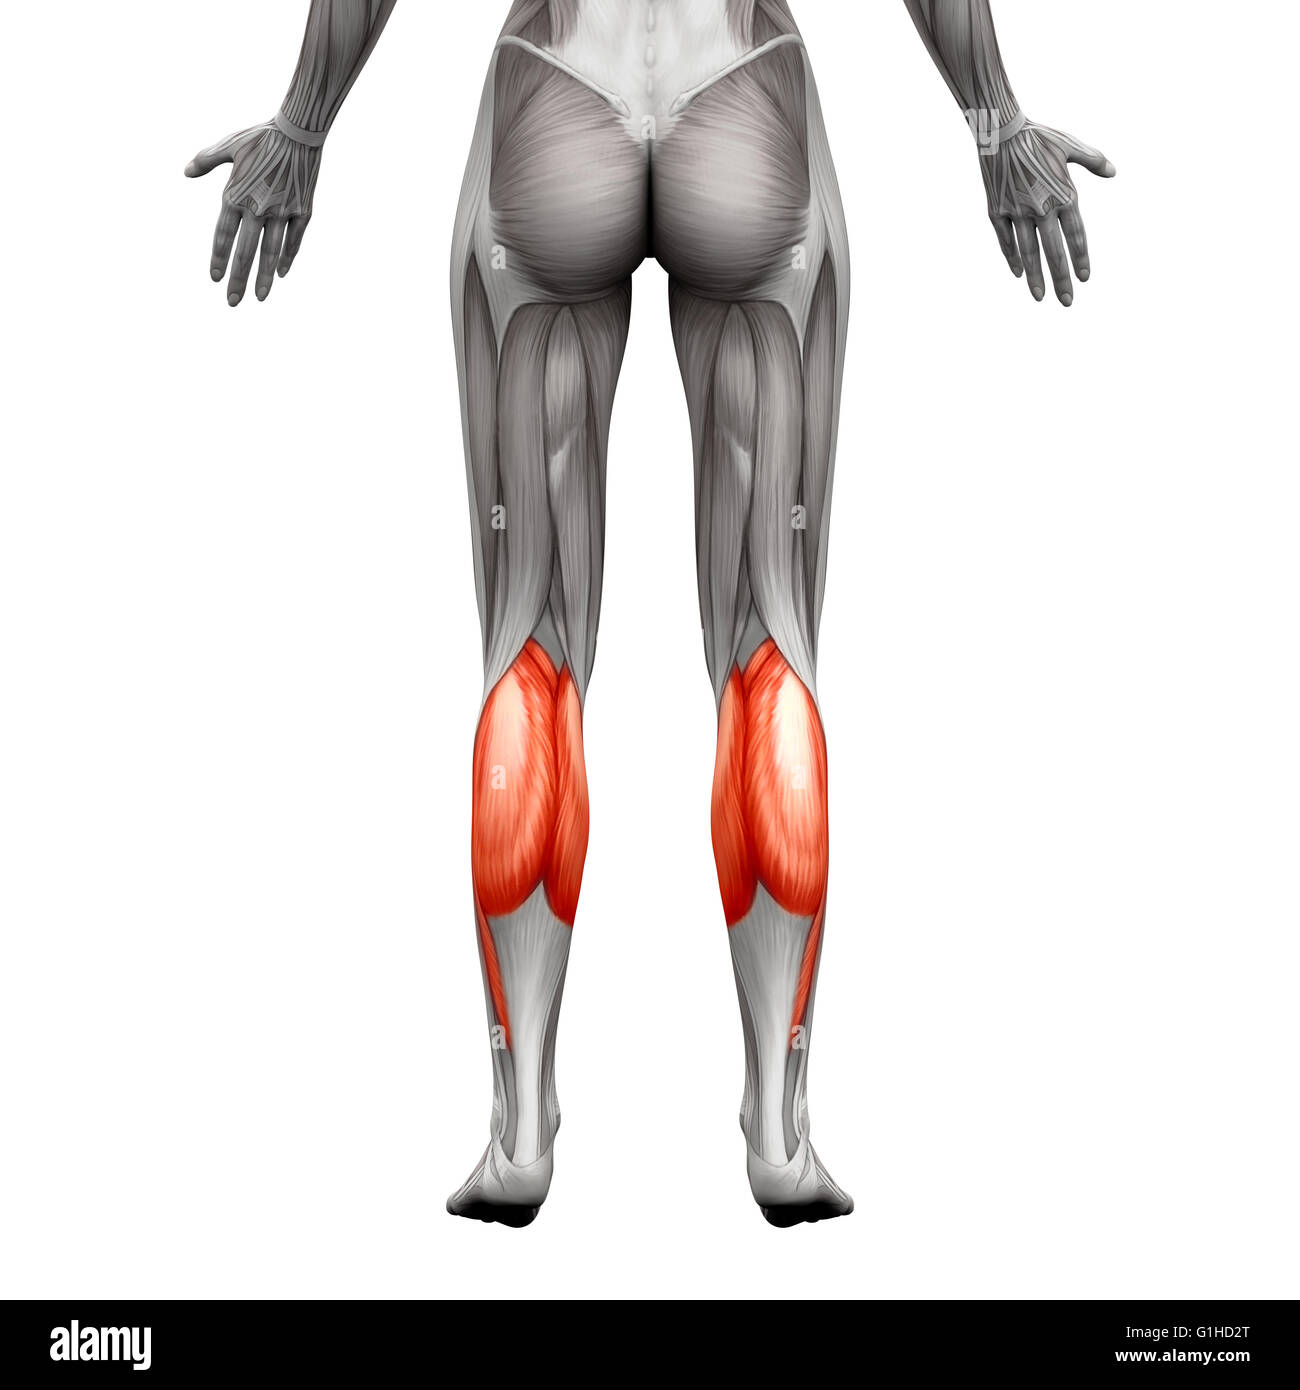 Calf Muscle - Gastrocnemius, Plantar Anatomy Muscle - isolated on ...